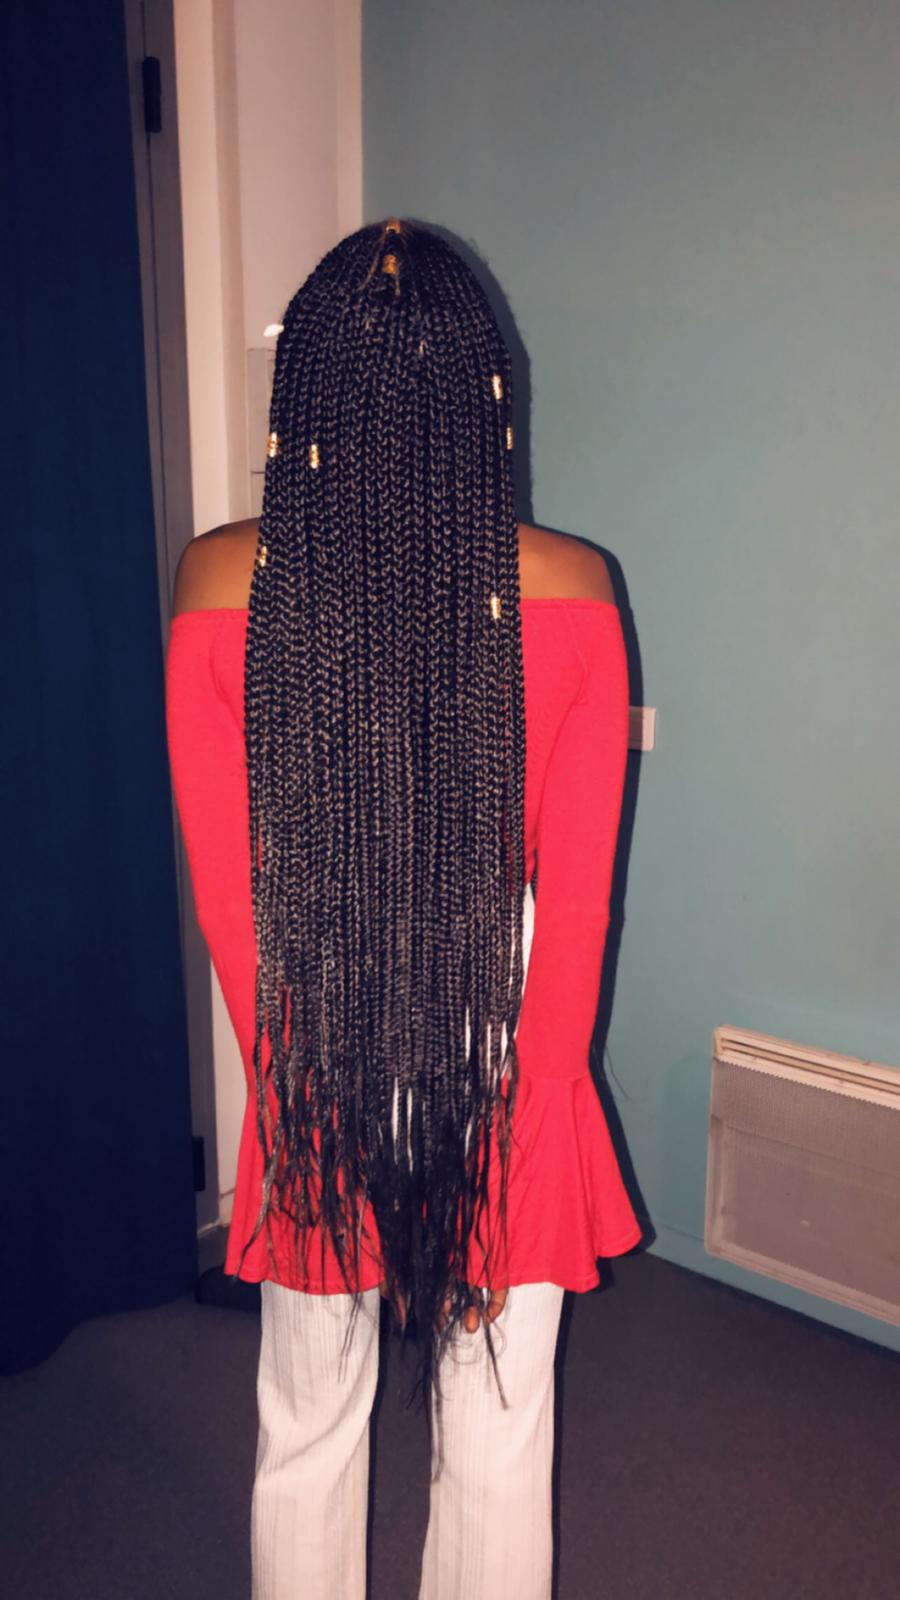 salon de coiffure afro tresse tresses box braids crochet braids vanilles tissages paris 75 77 78 91 92 93 94 95 YKZOTQCL